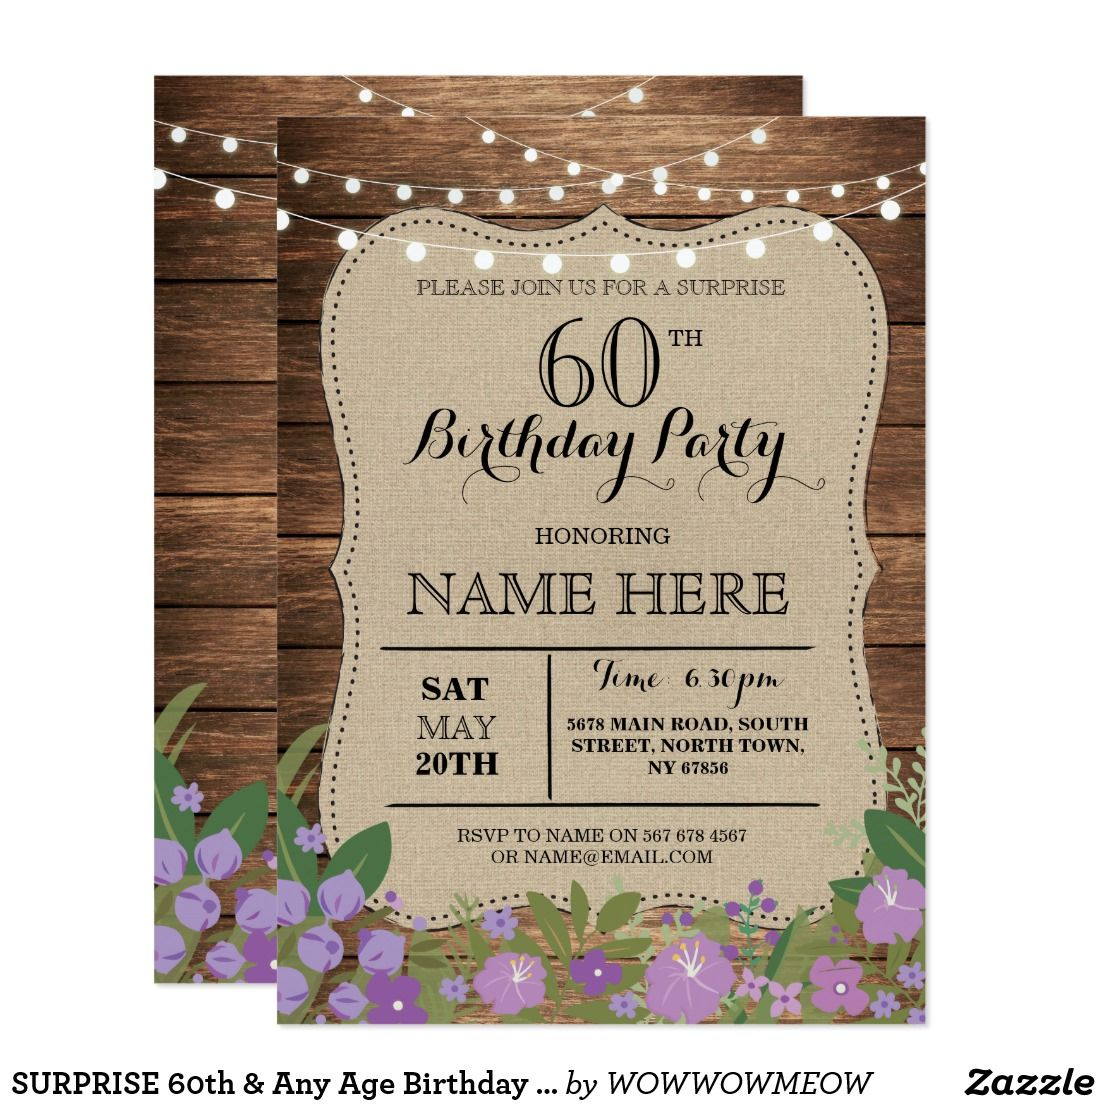 SURPRISE 60th & Any Age Birthday Party Wood Invite | Invites ...